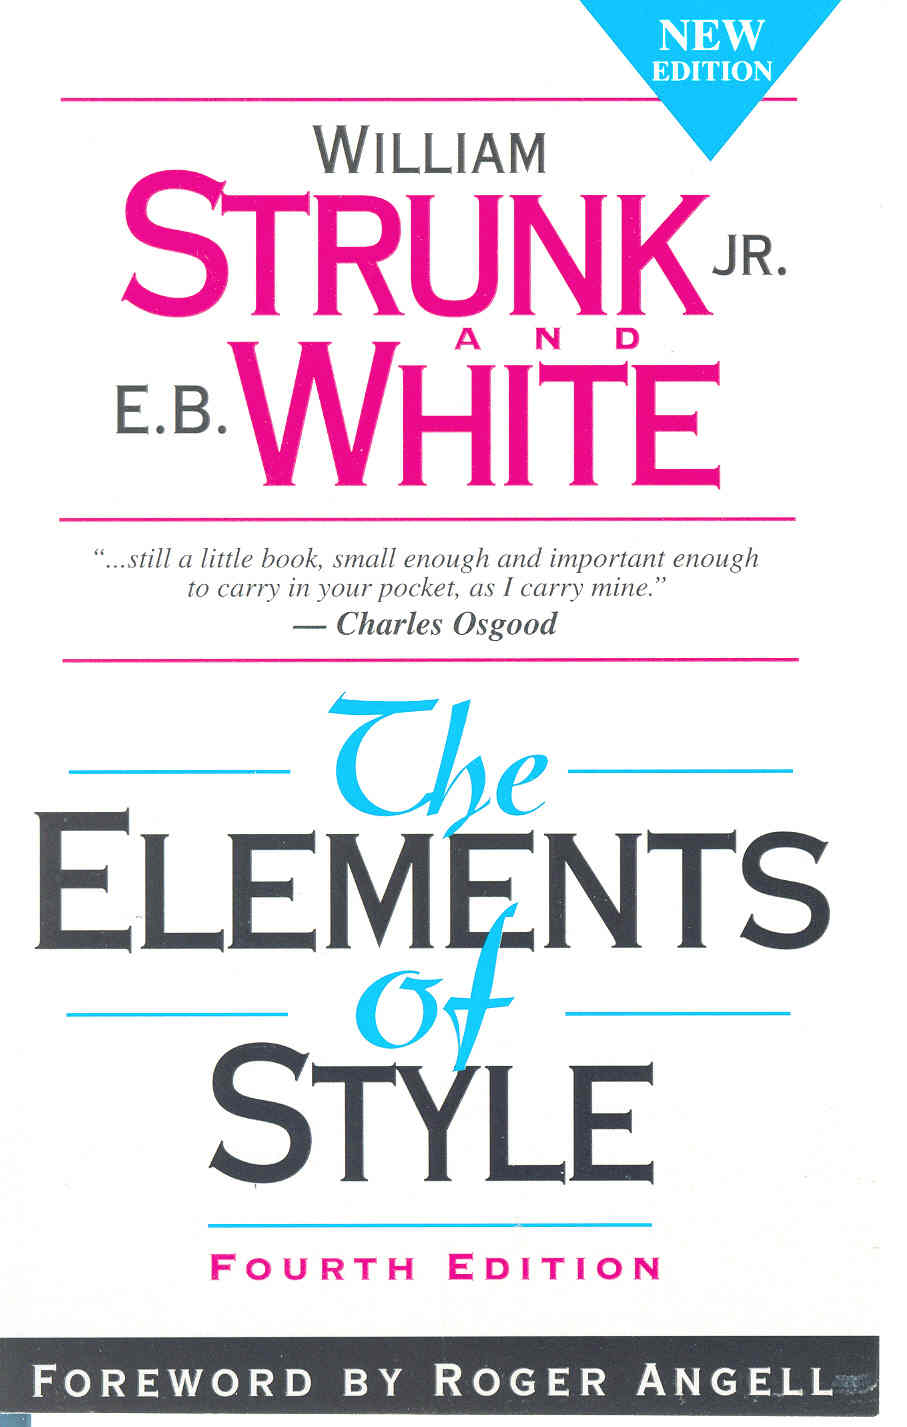 The Elements of Style, Strunk & White